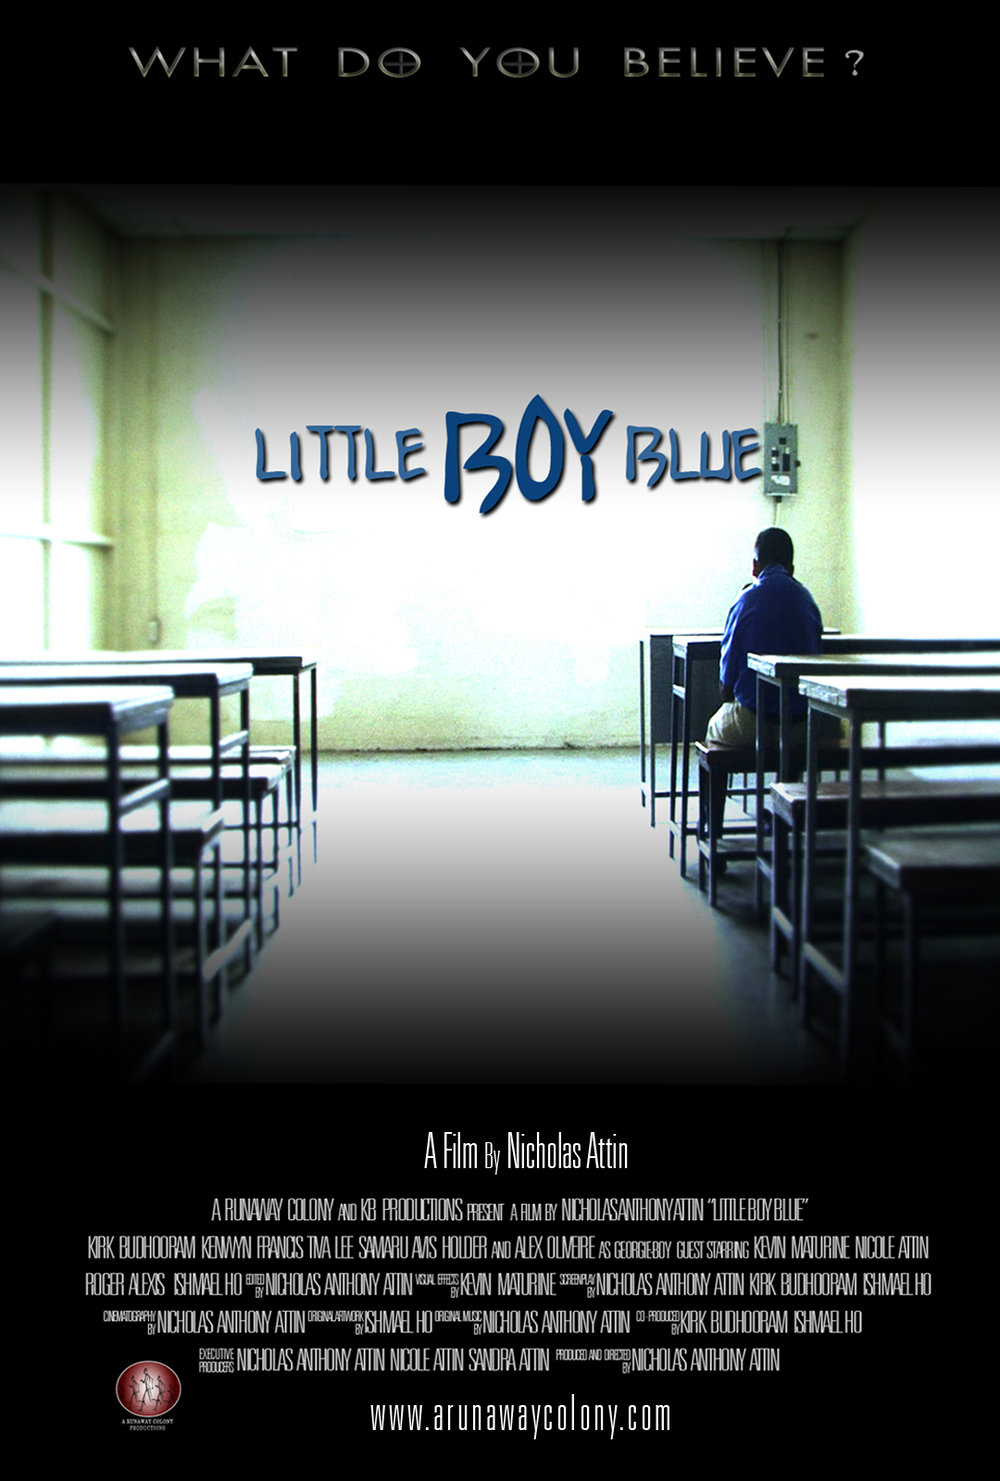 Little Boy Blue - Poster.jpg